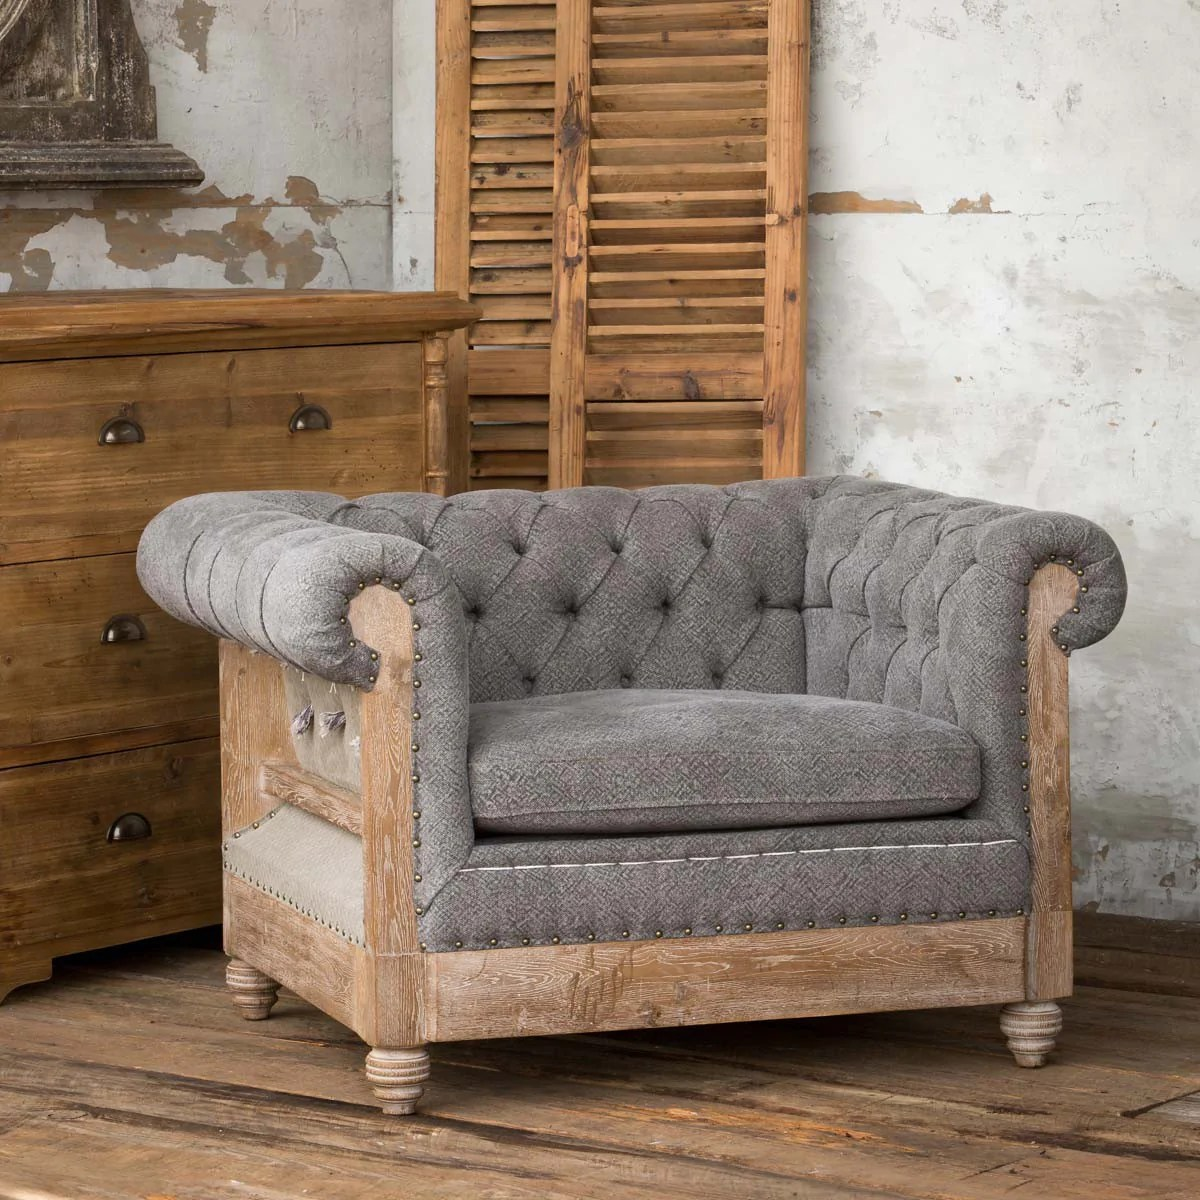 deconstructed chesterfield sofa